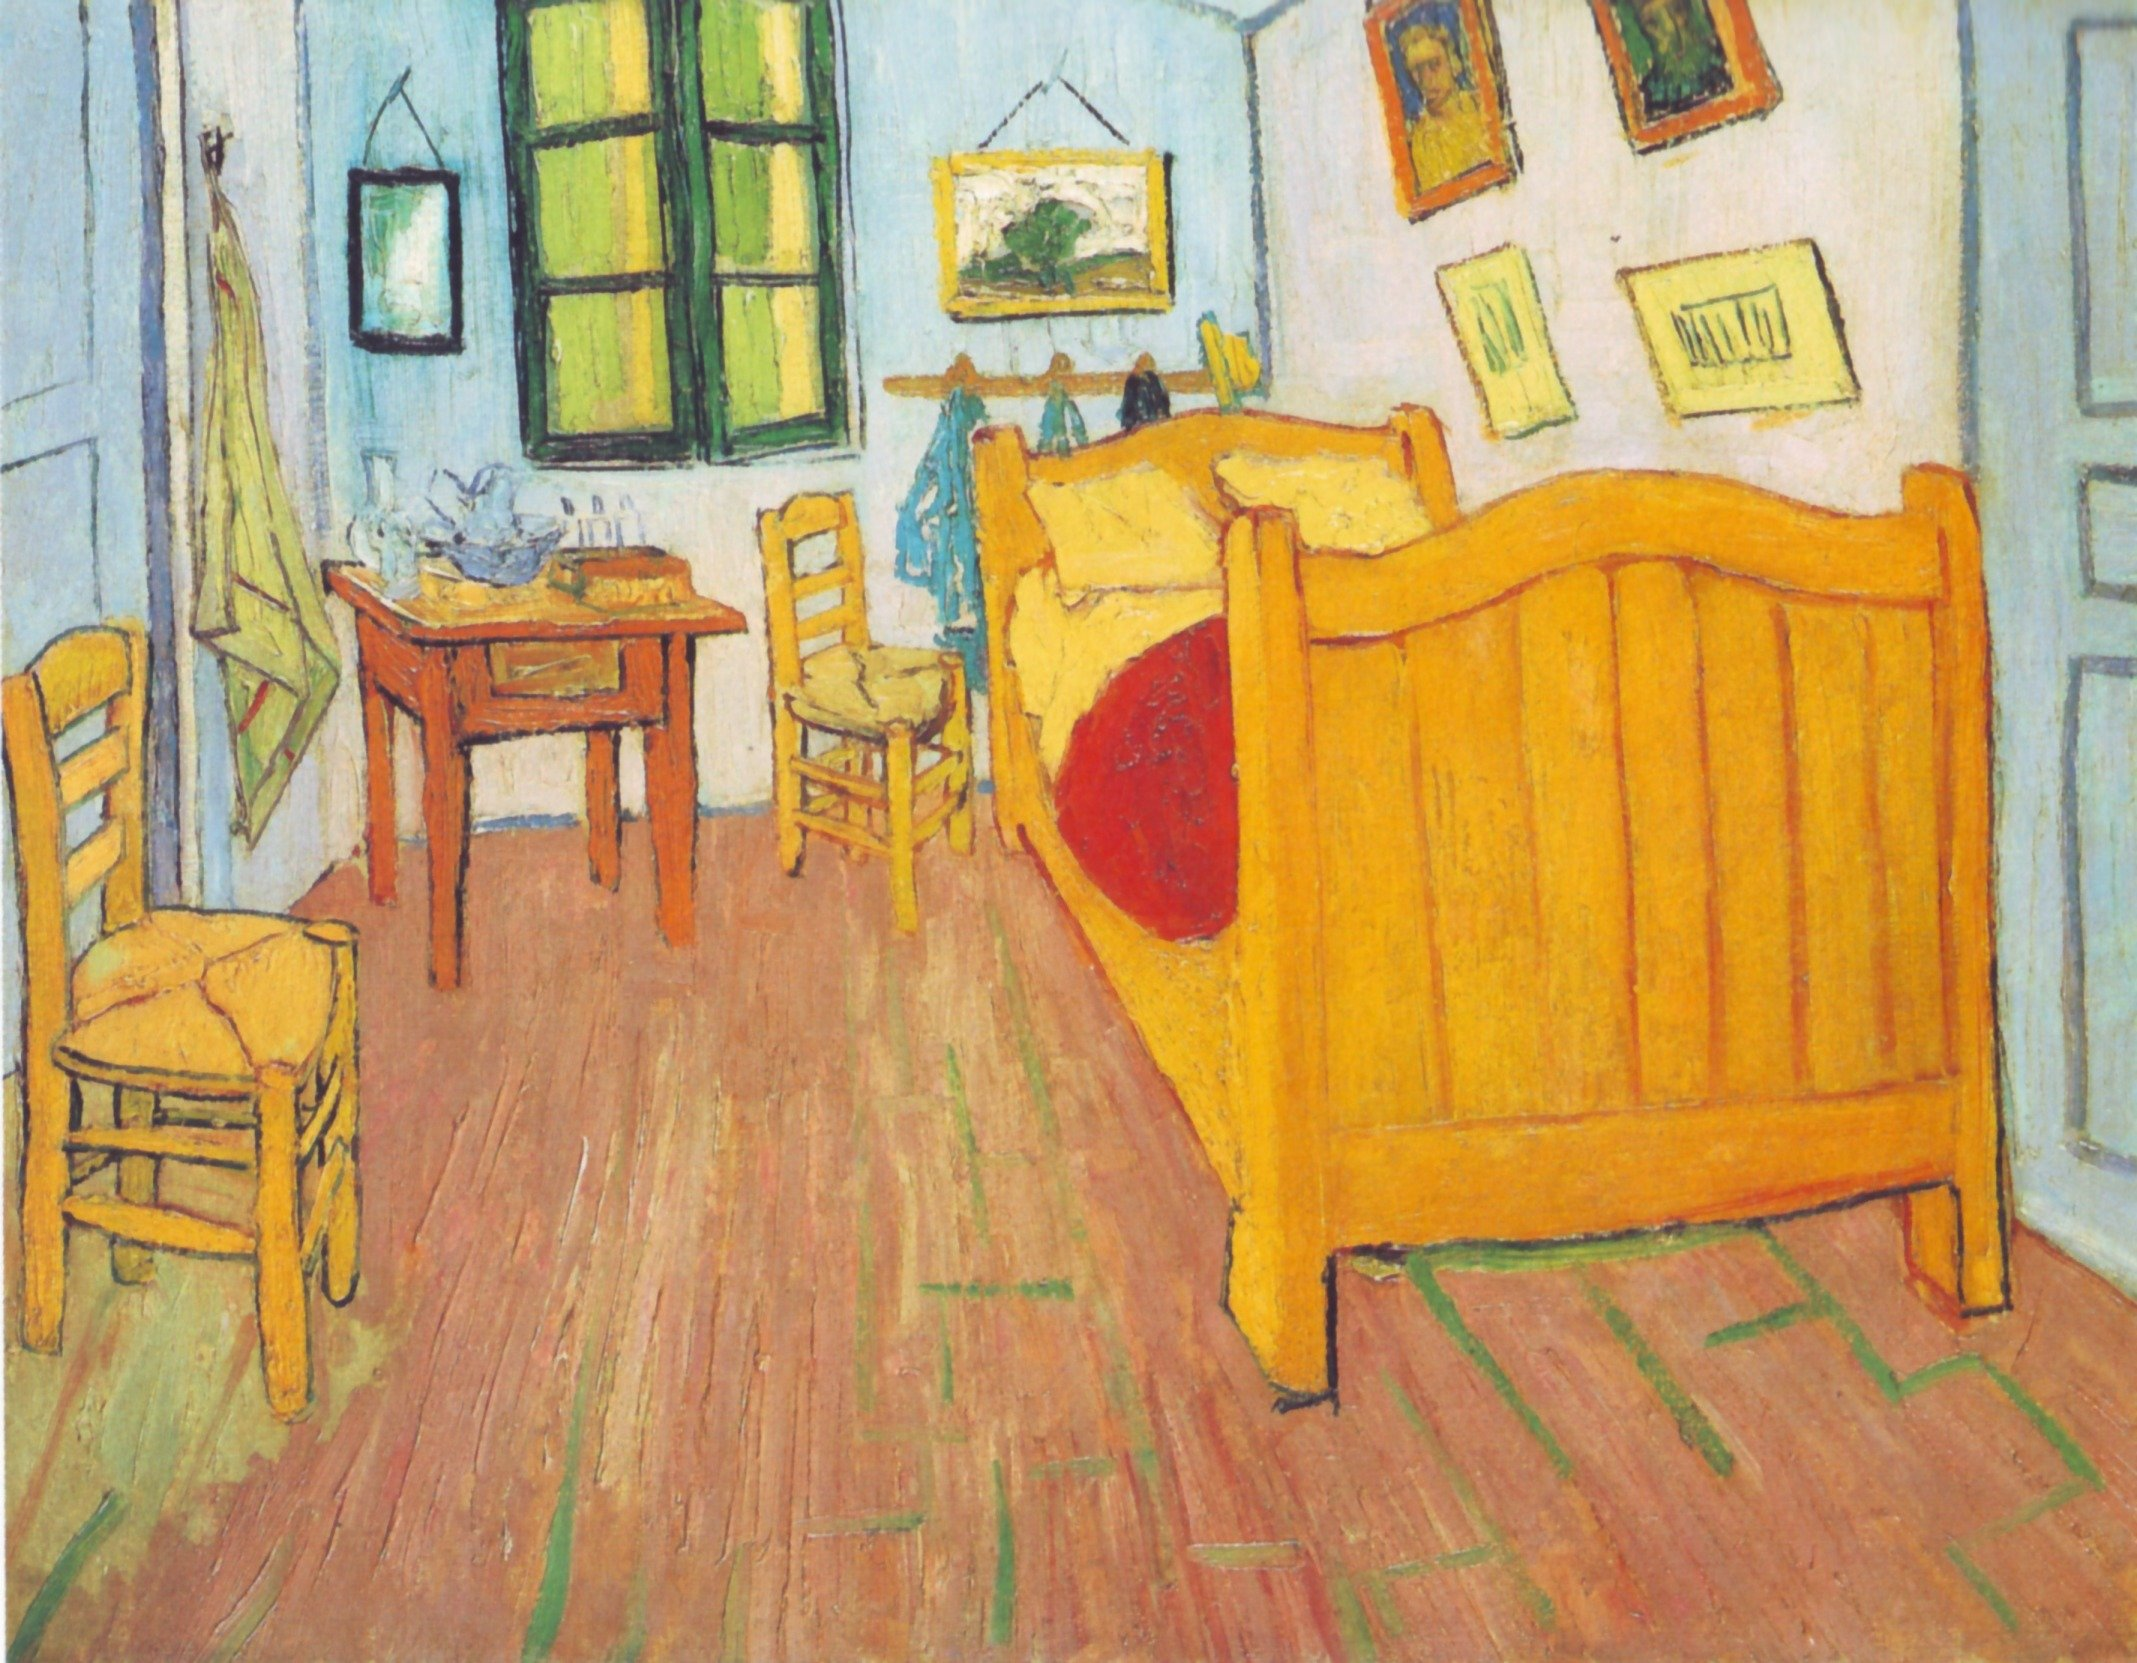 Vincent Van Gogh, The Bedroom, 1889